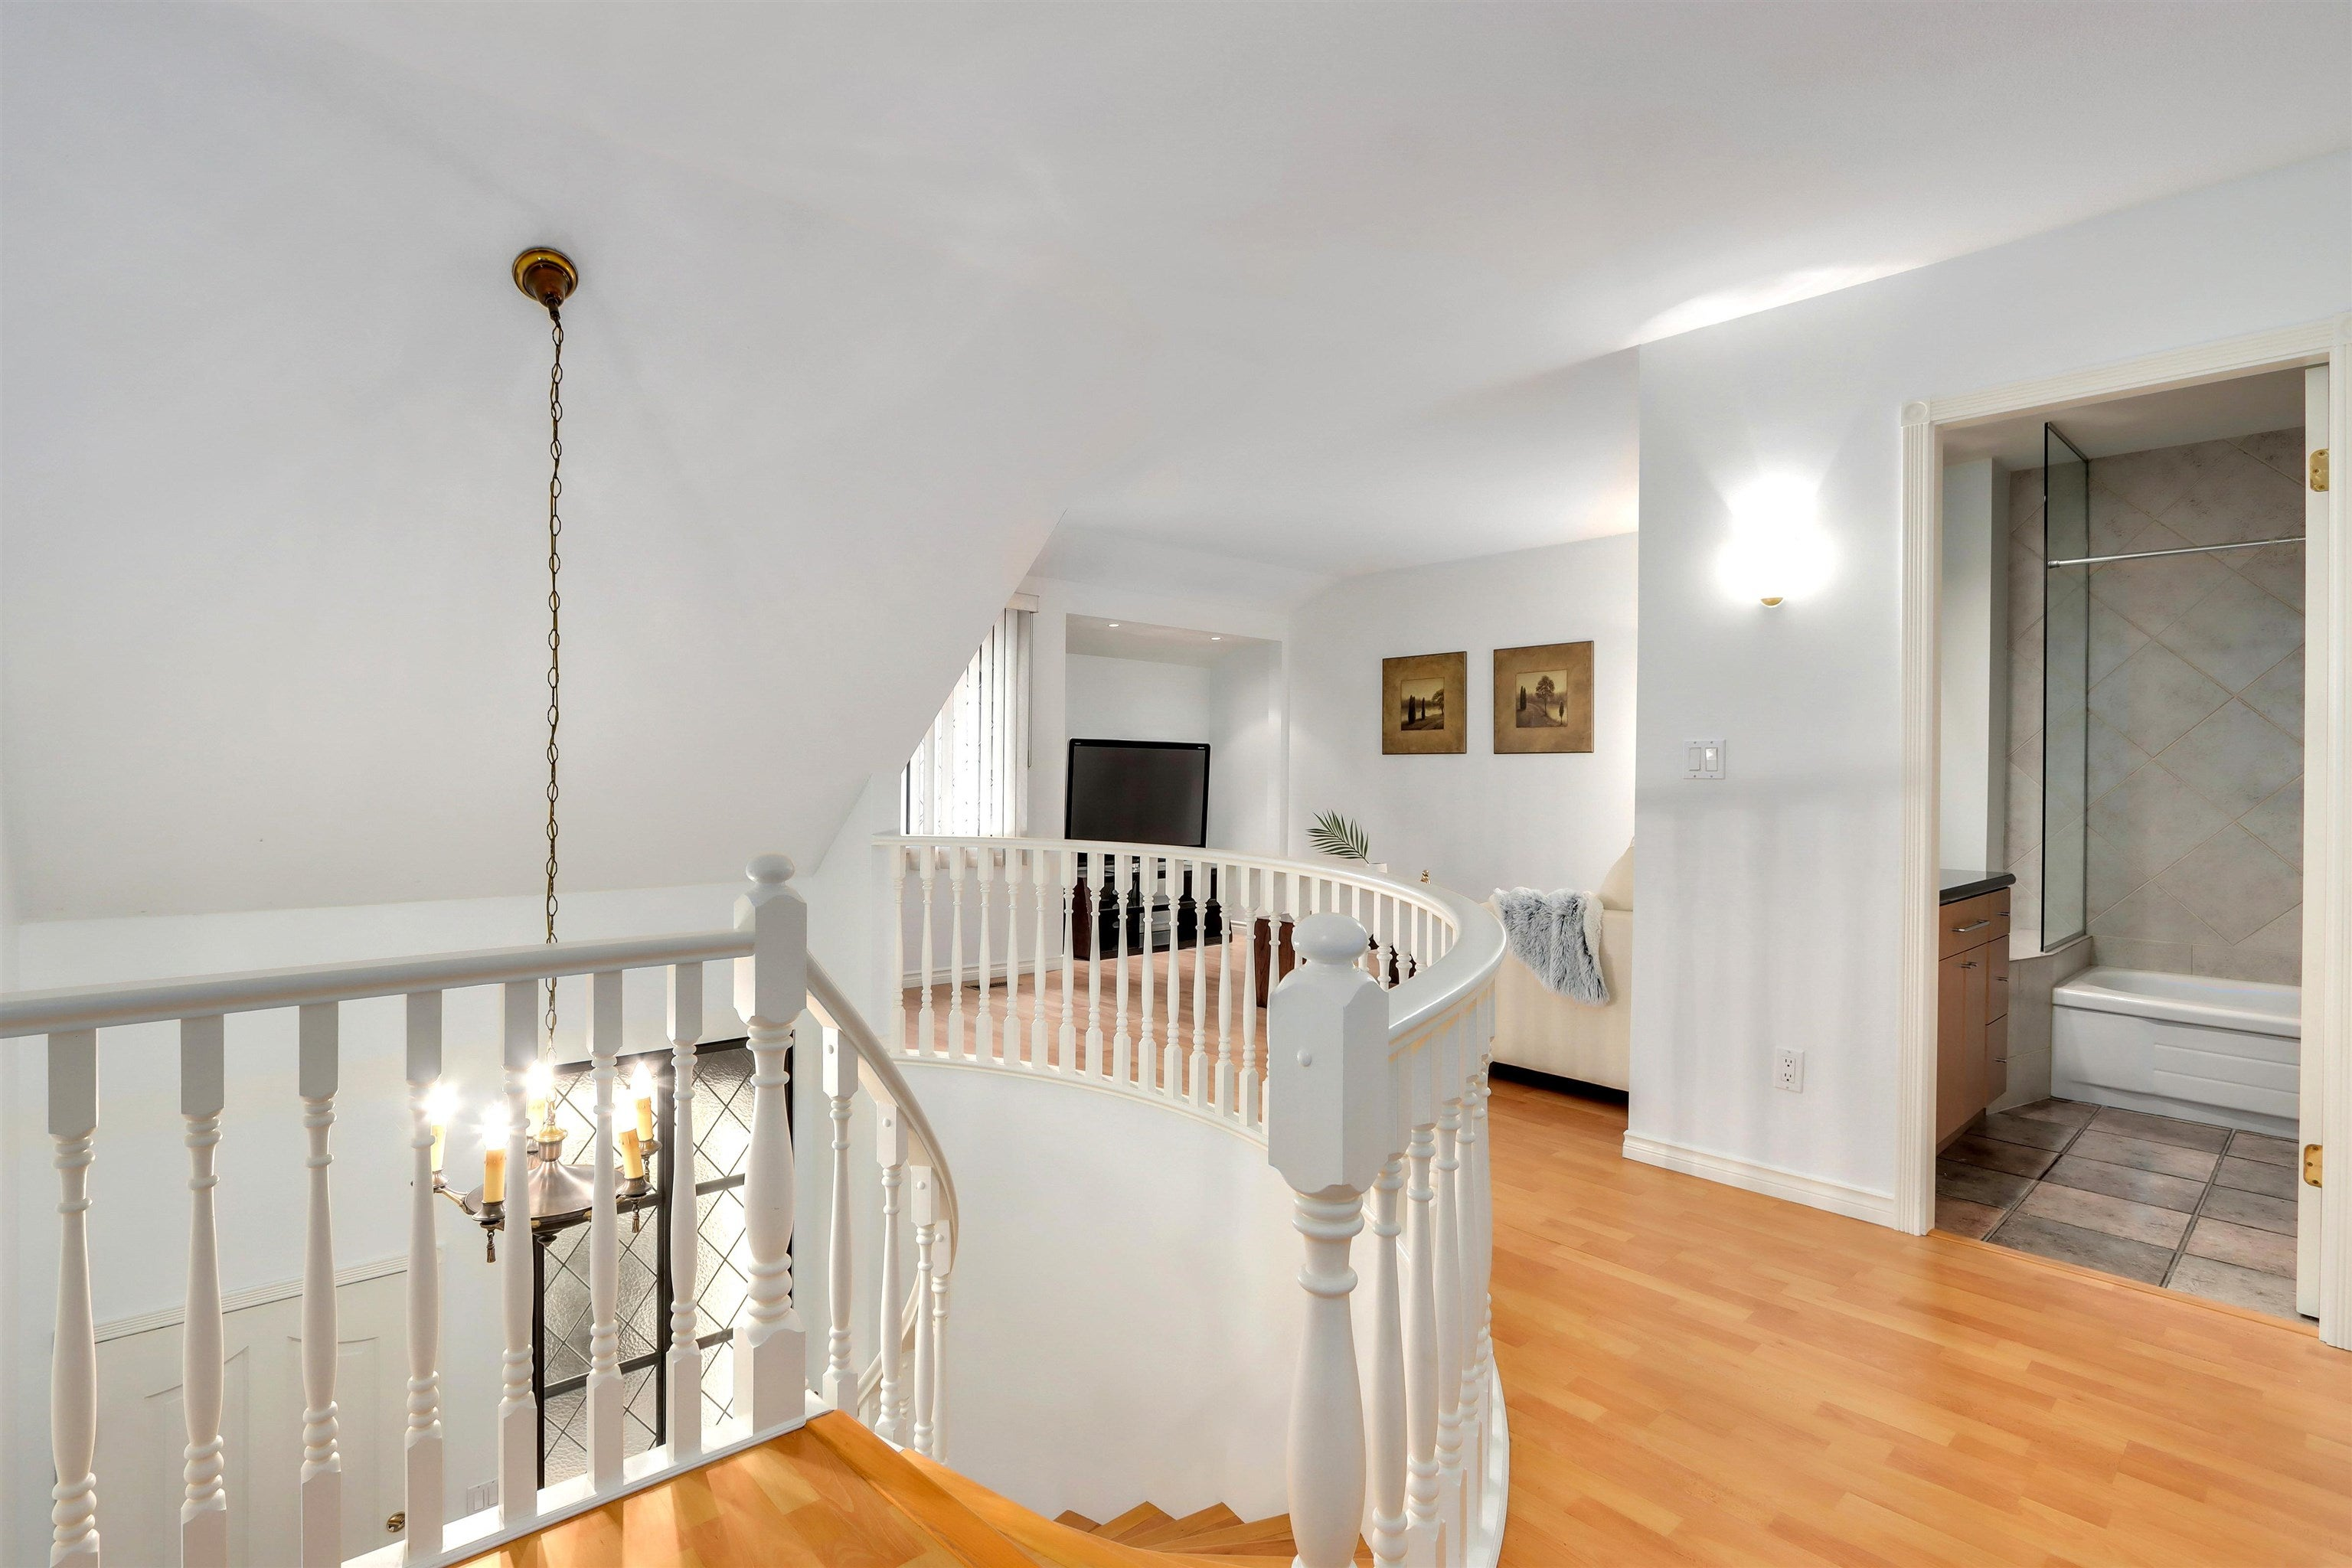 37 6600 LUCAS ROAD - Woodwards Townhouse for sale, 3 Bedrooms (R2617389) - #19